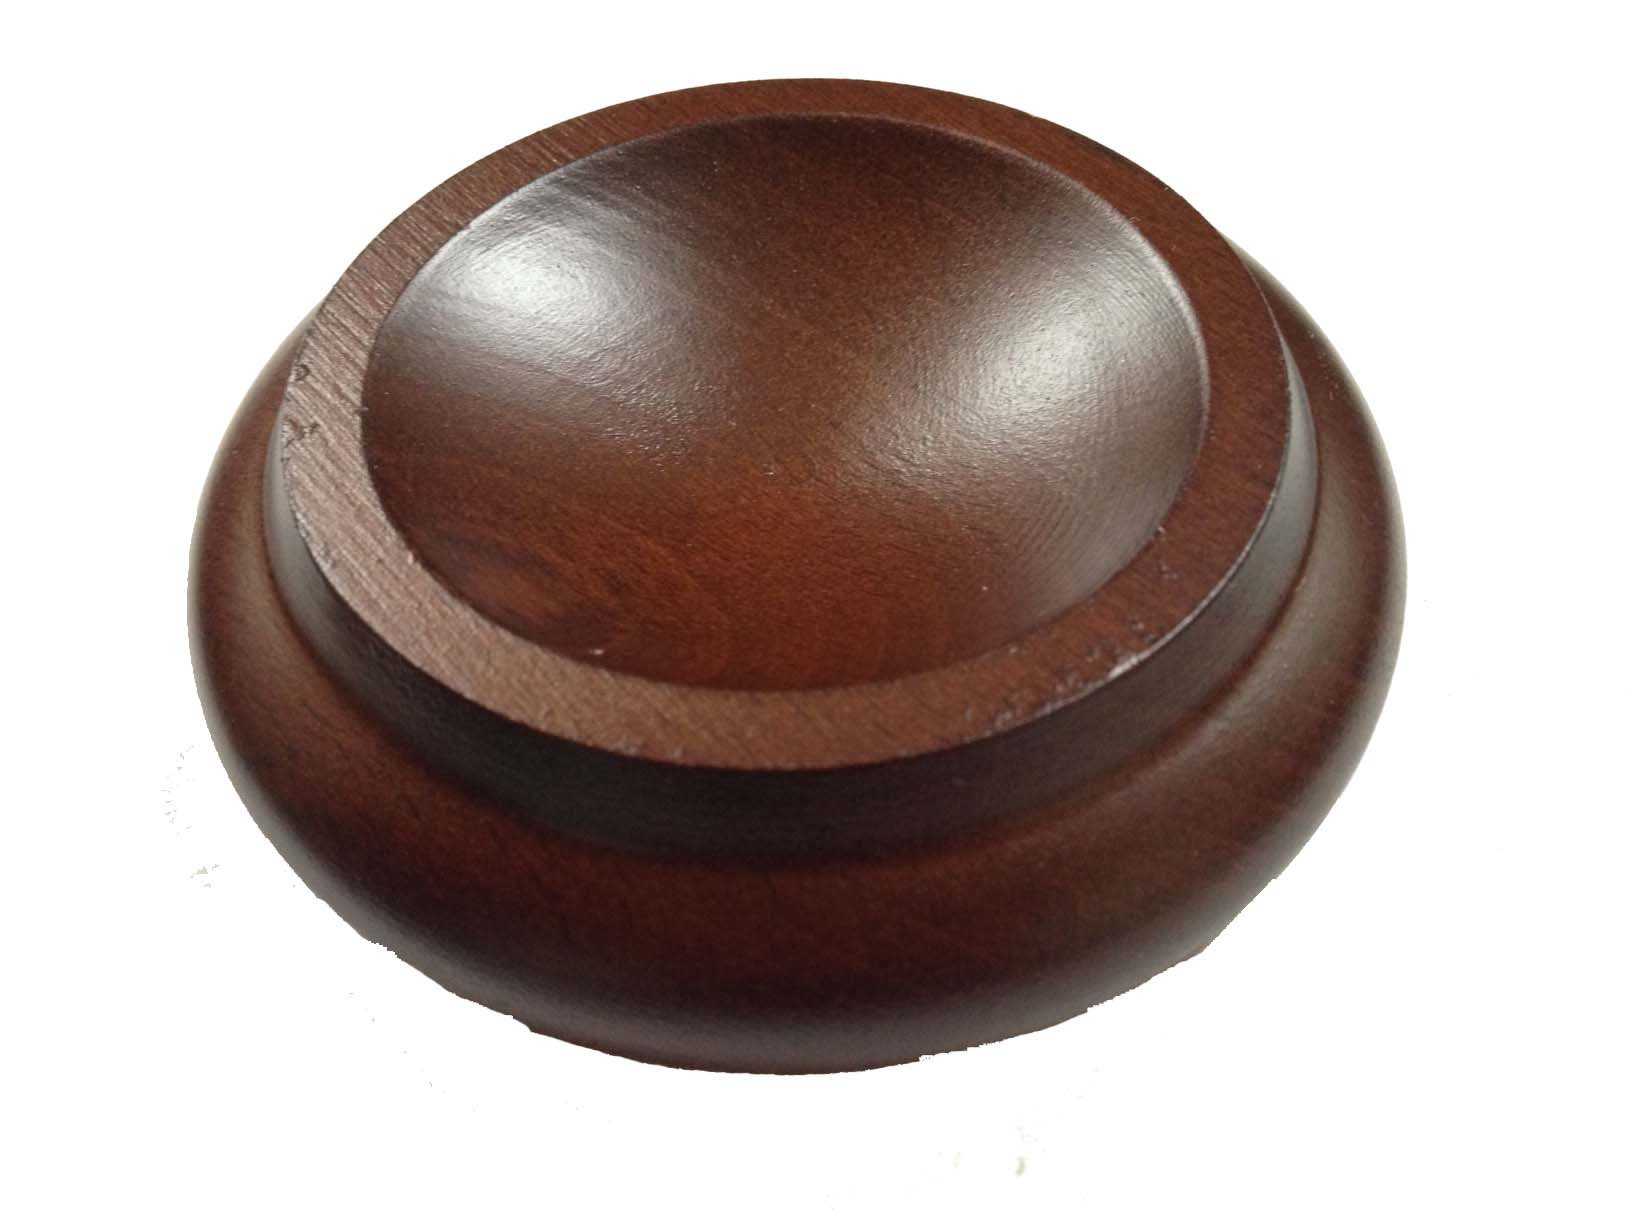 Hardwood Piano Caster Cups, Set of 4 - Mahogany by Caster Cups Ltd (Image #1)